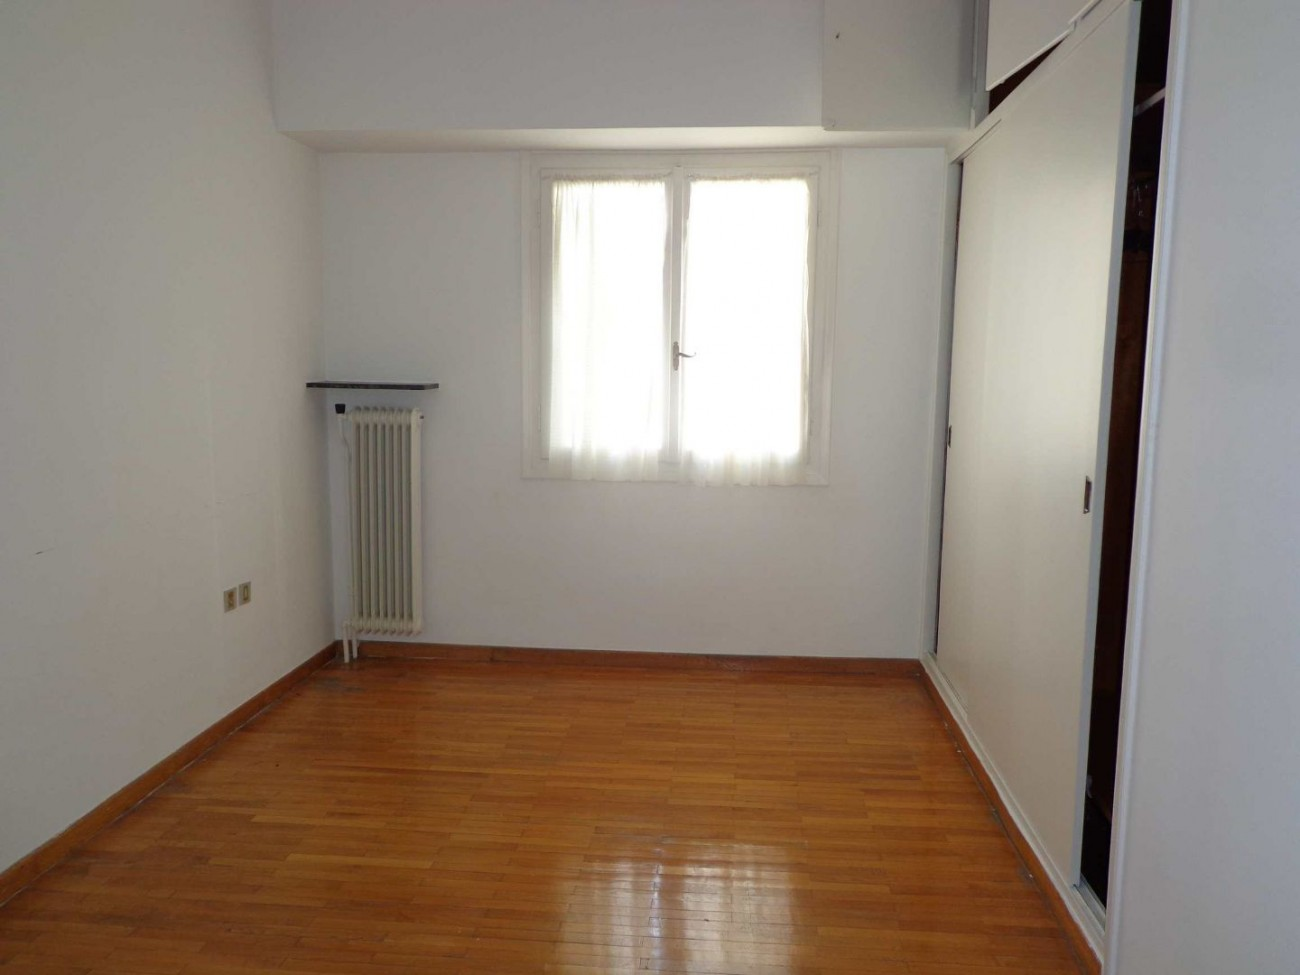 Apartment for Rent in Ellinorwswn, Athens City Center, Greece